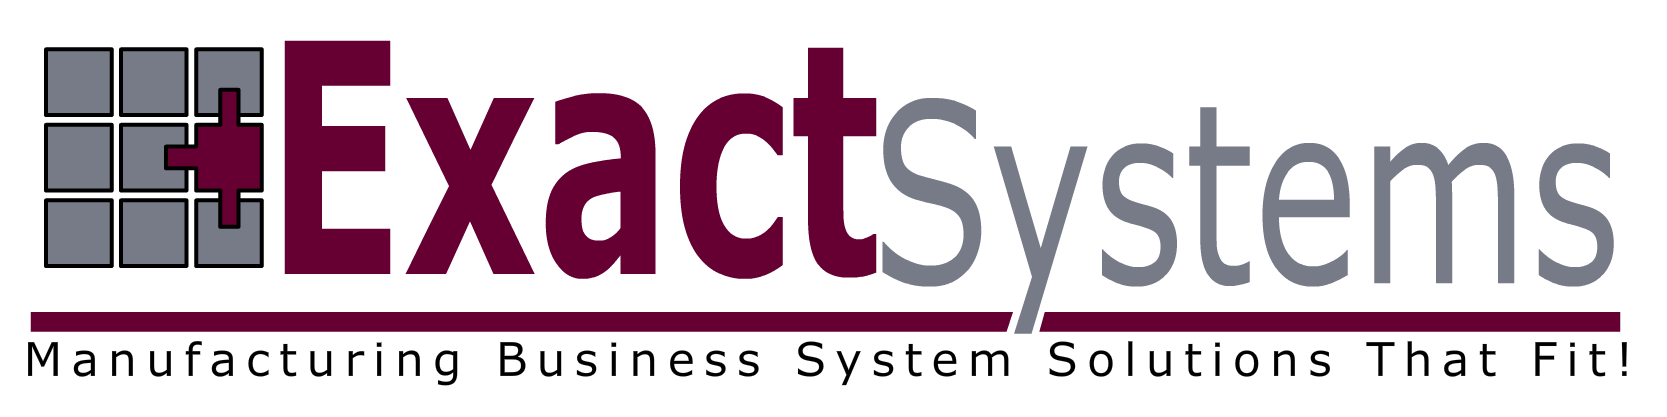 Exact Systems Long Logo